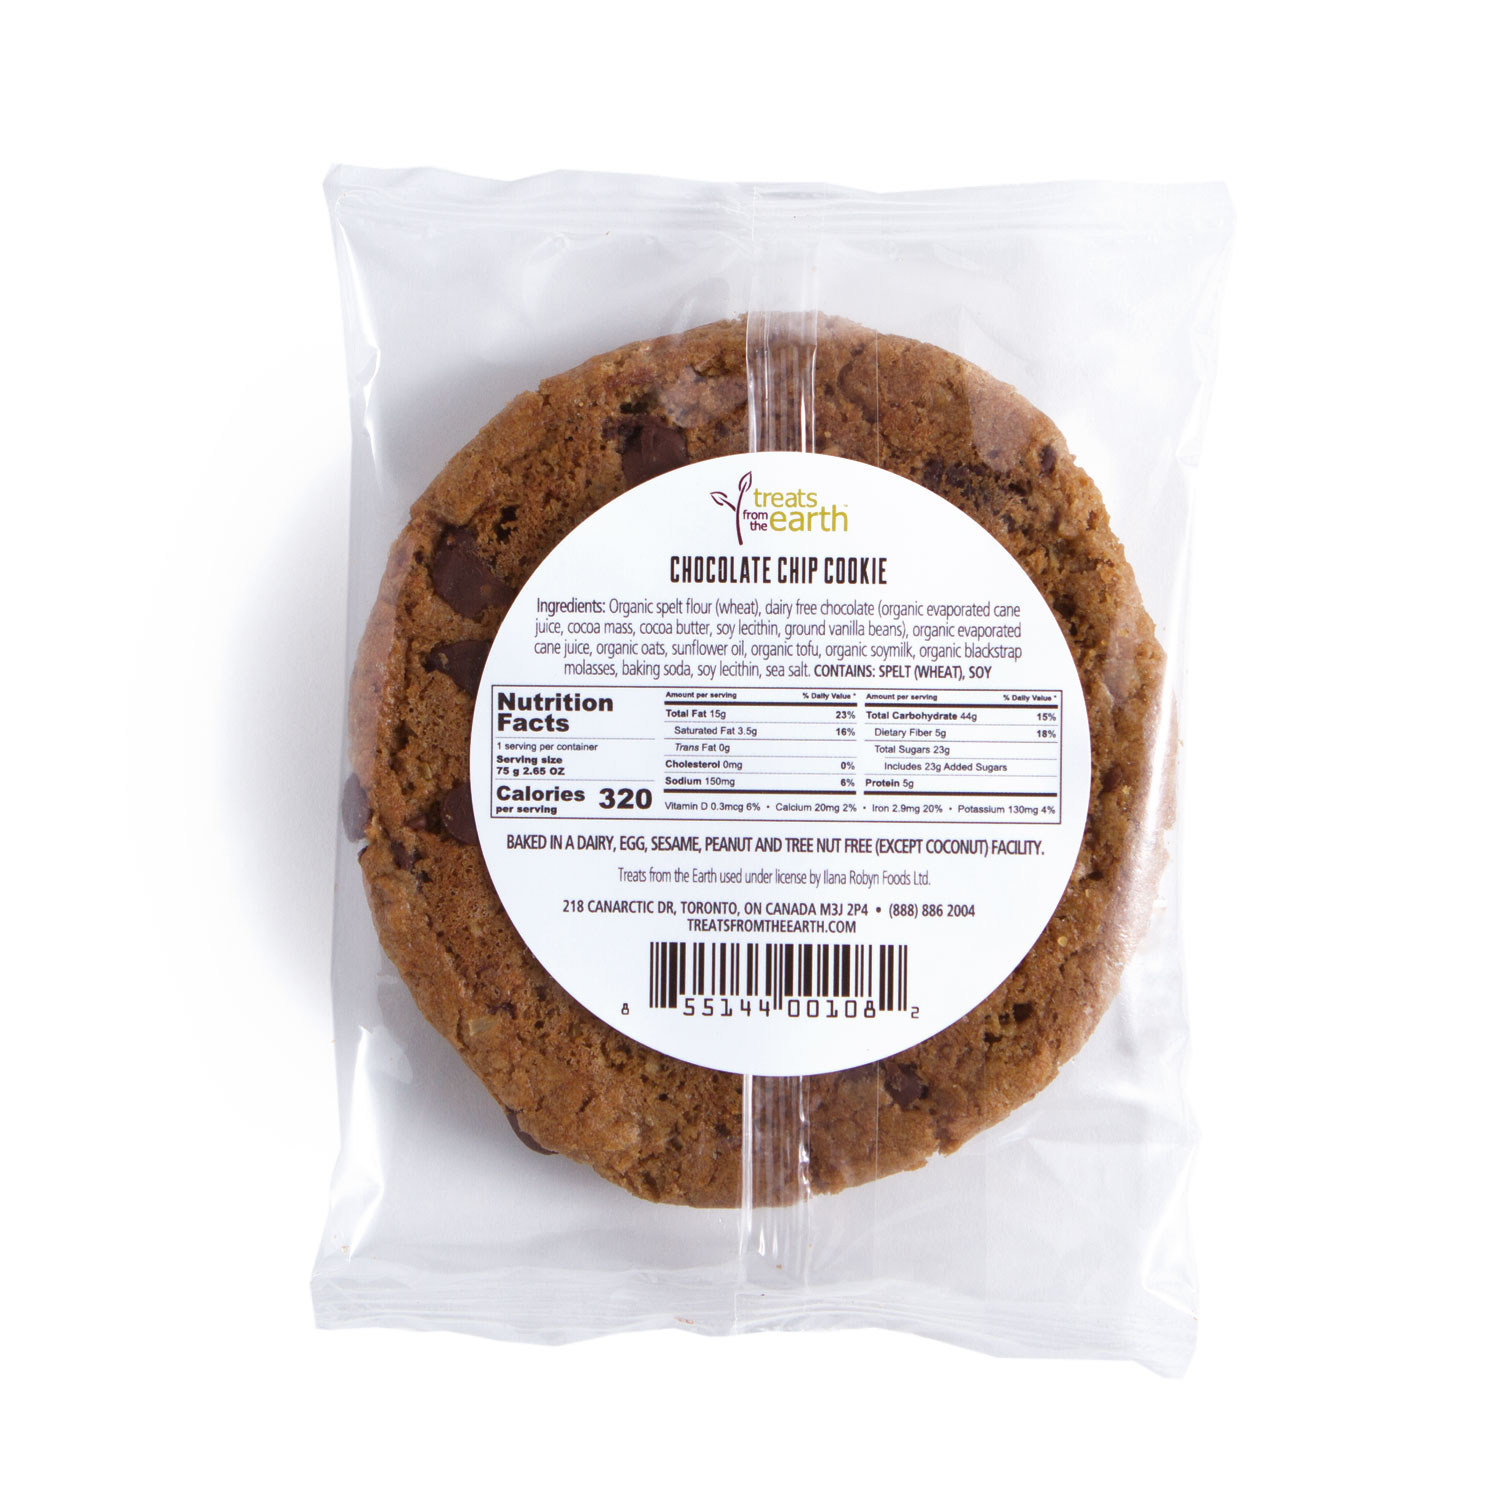 TFTE - NF Chocolate Chip Cookie back label